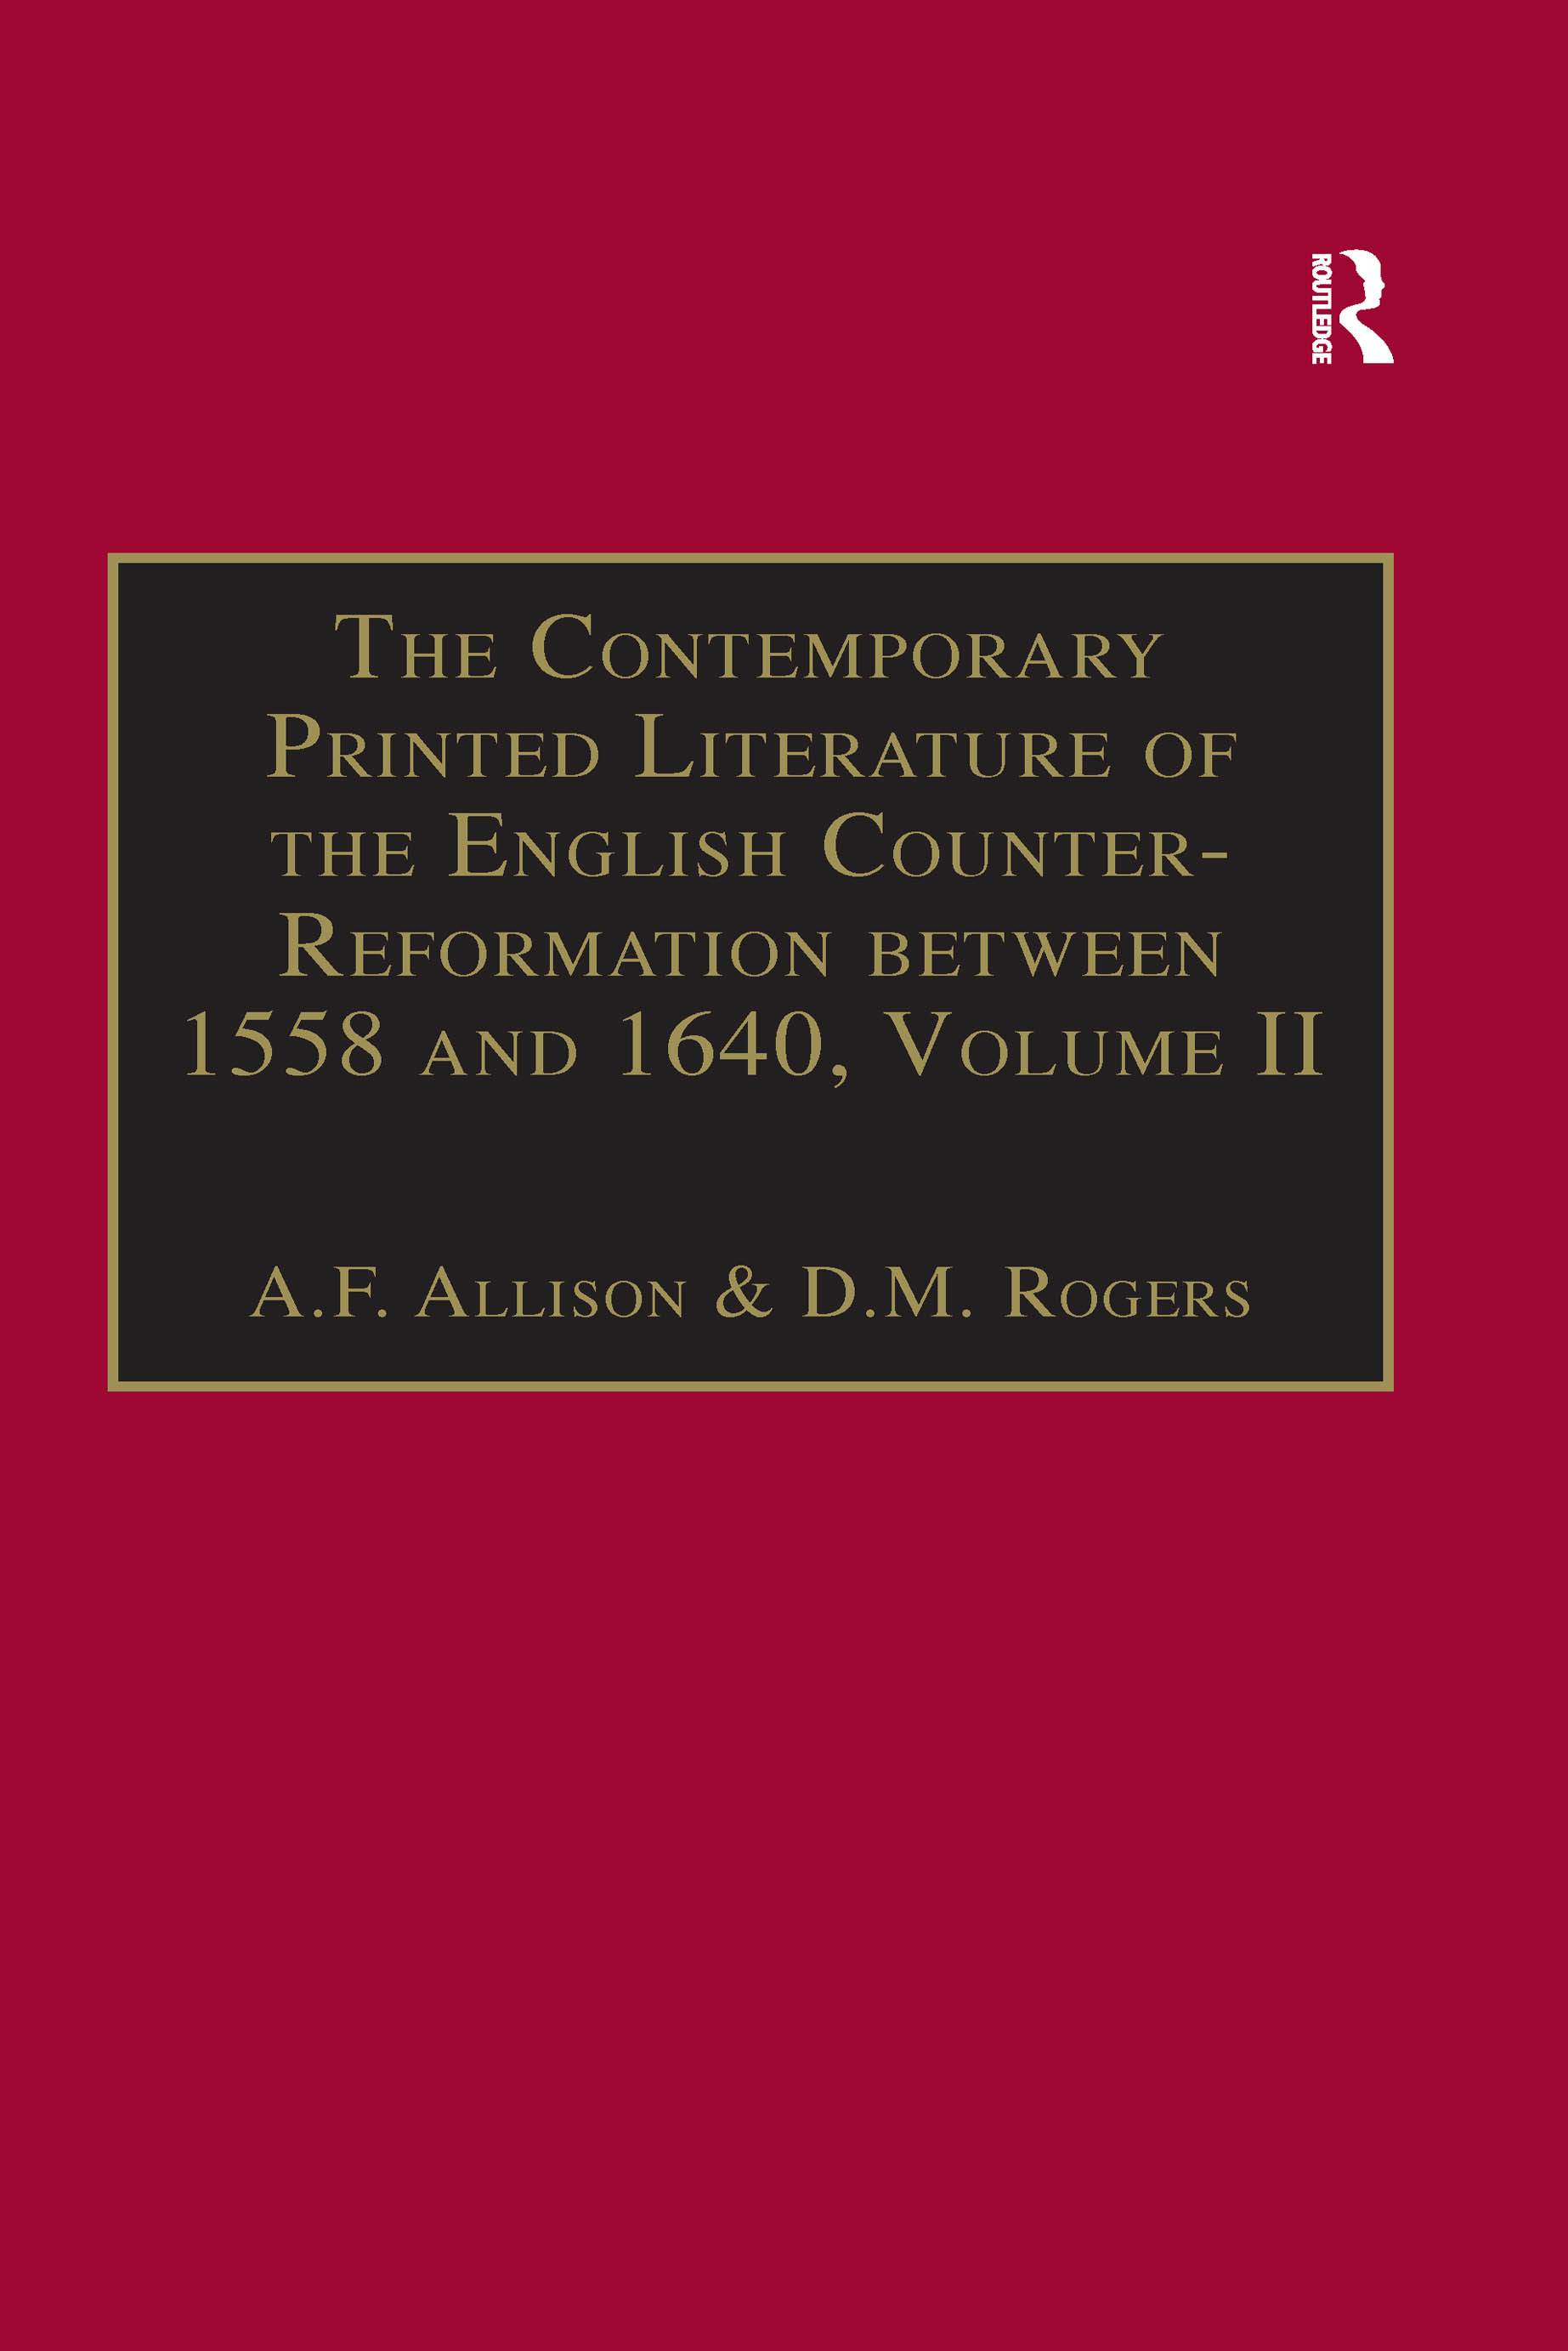 The Contemporary Printed Literature of the English Counter-Reformation between 1558 and 1640